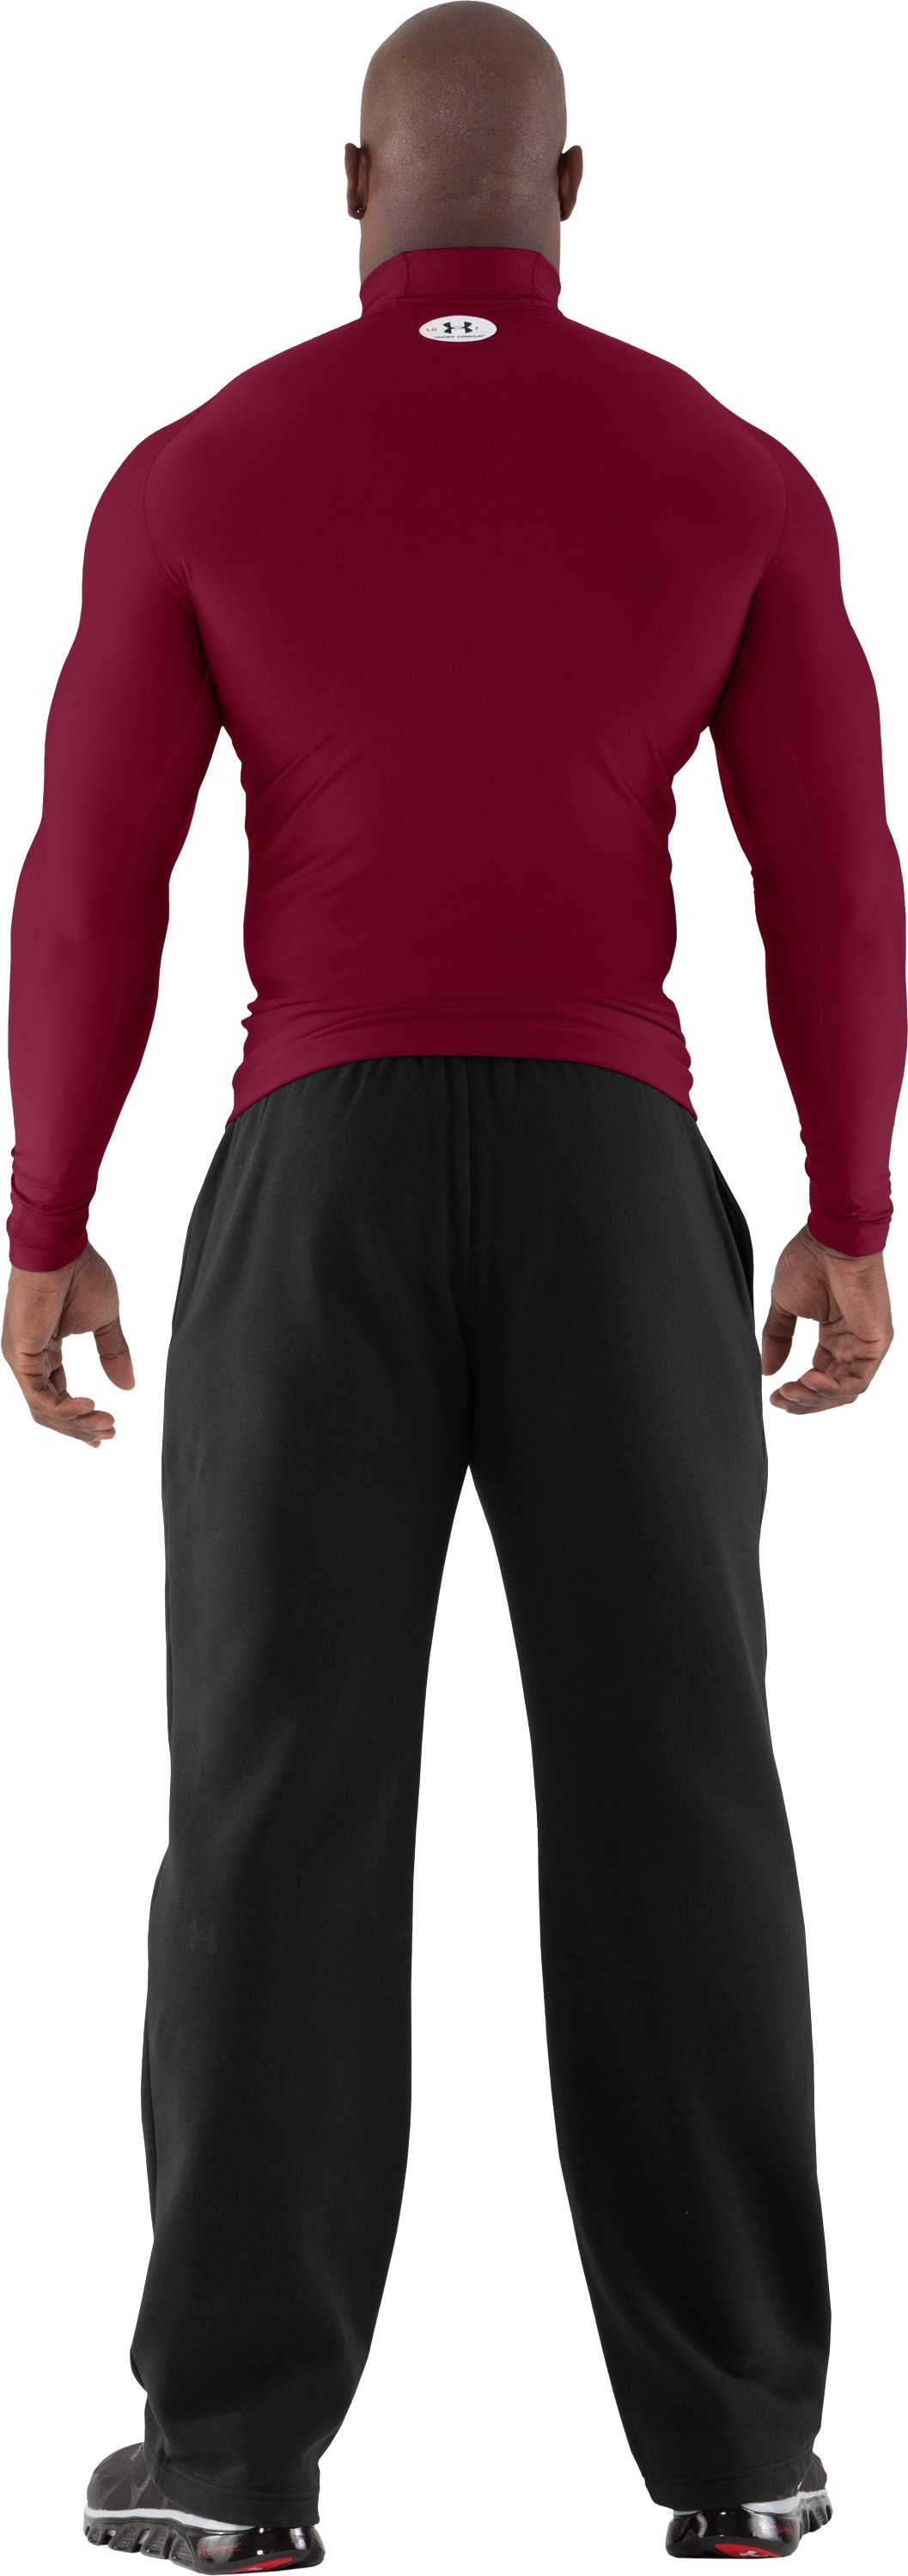 Men's ColdGear® Evo Long Sleeve Compression Mock, Maroon, Back